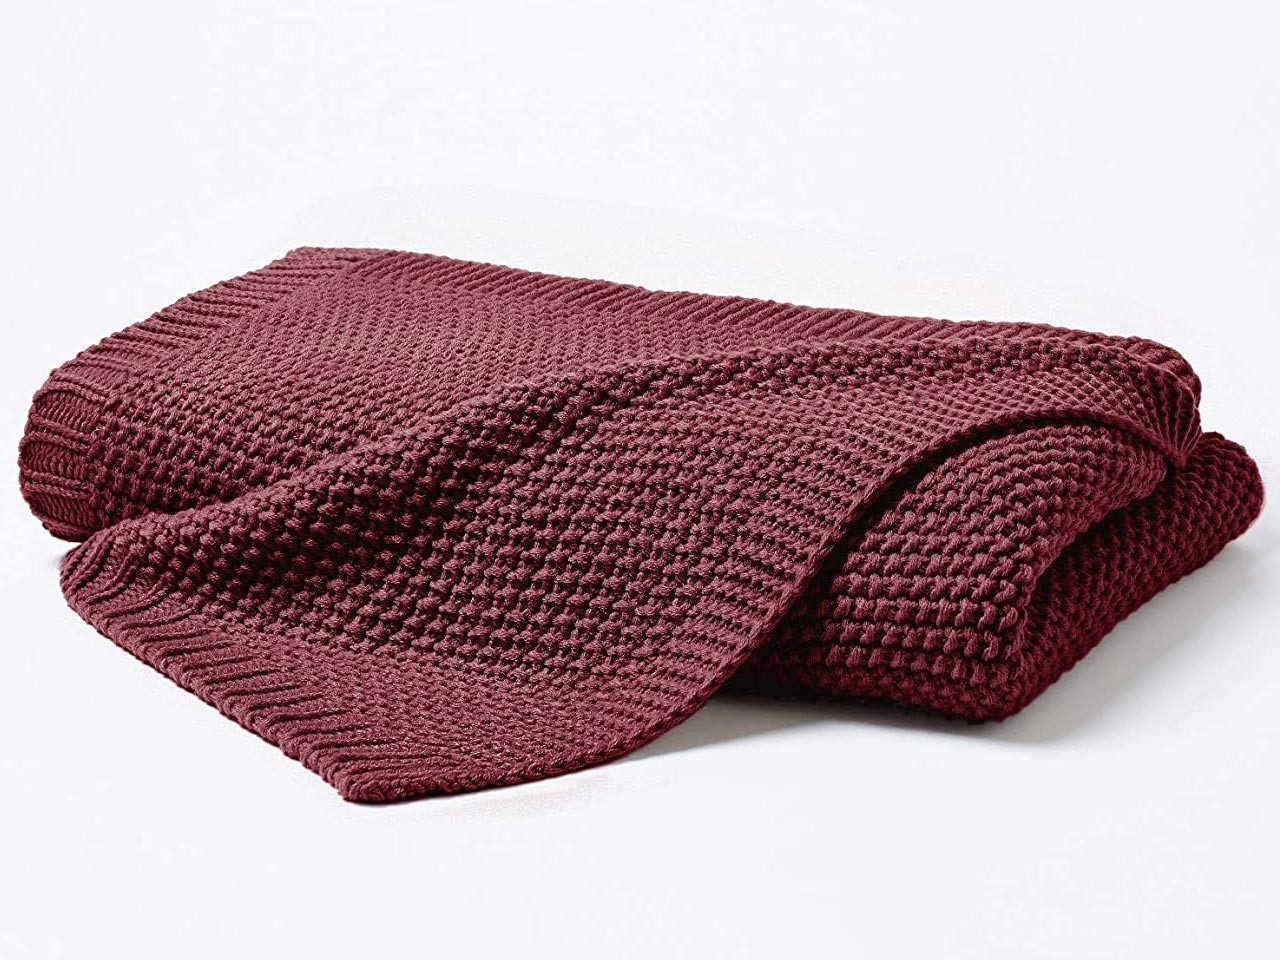 H.G. Hahn Strickdecke Strick Plaid marsala 130x170